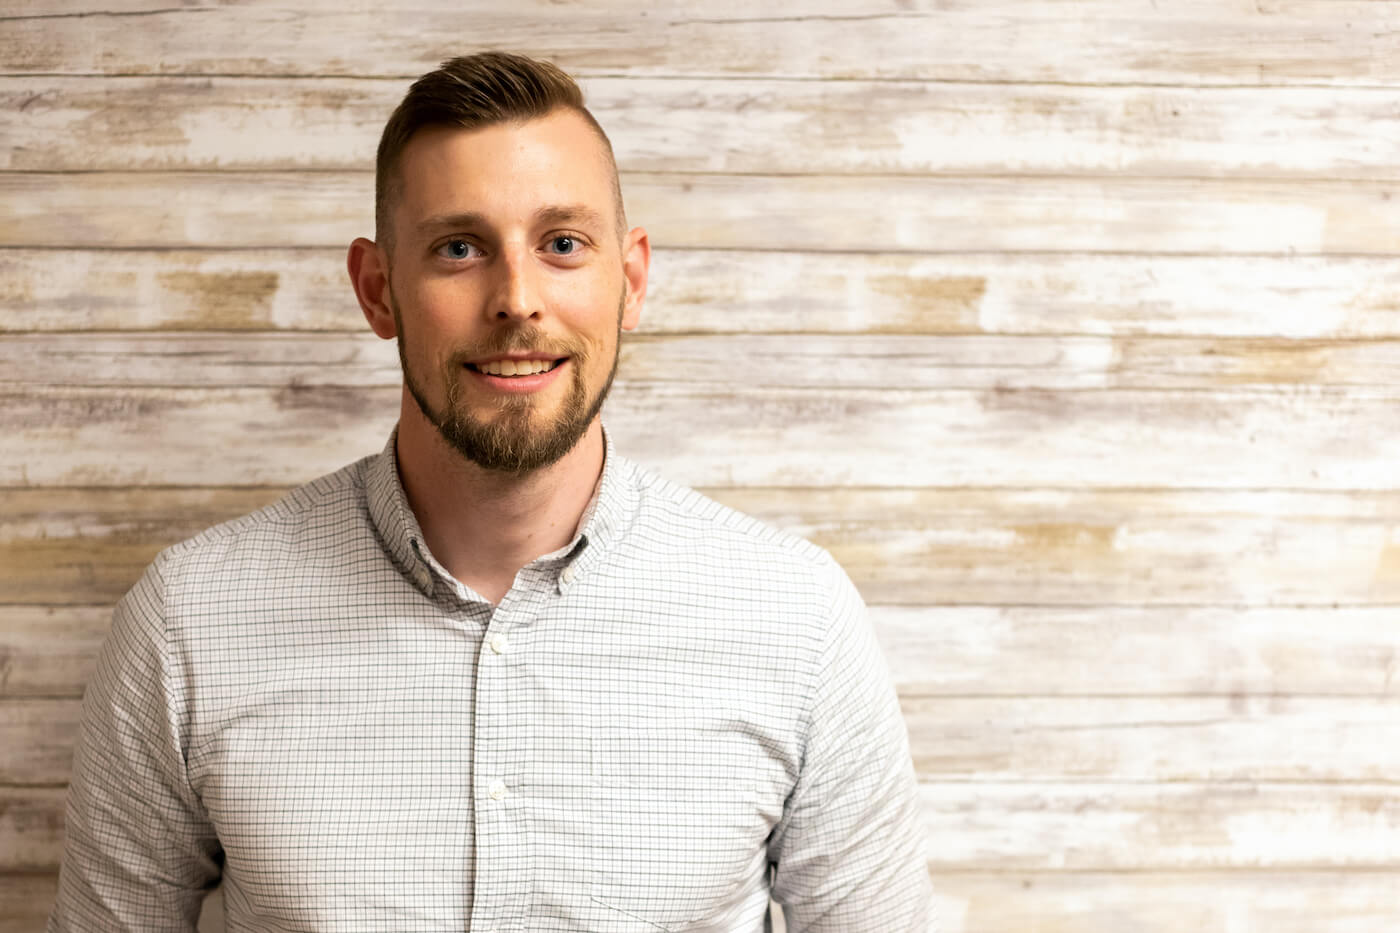 Dr Ben Tucker looking into the camera wearing a light-coloured plaid button-down shirt standing in front of a wall made of distressed wooden planks.